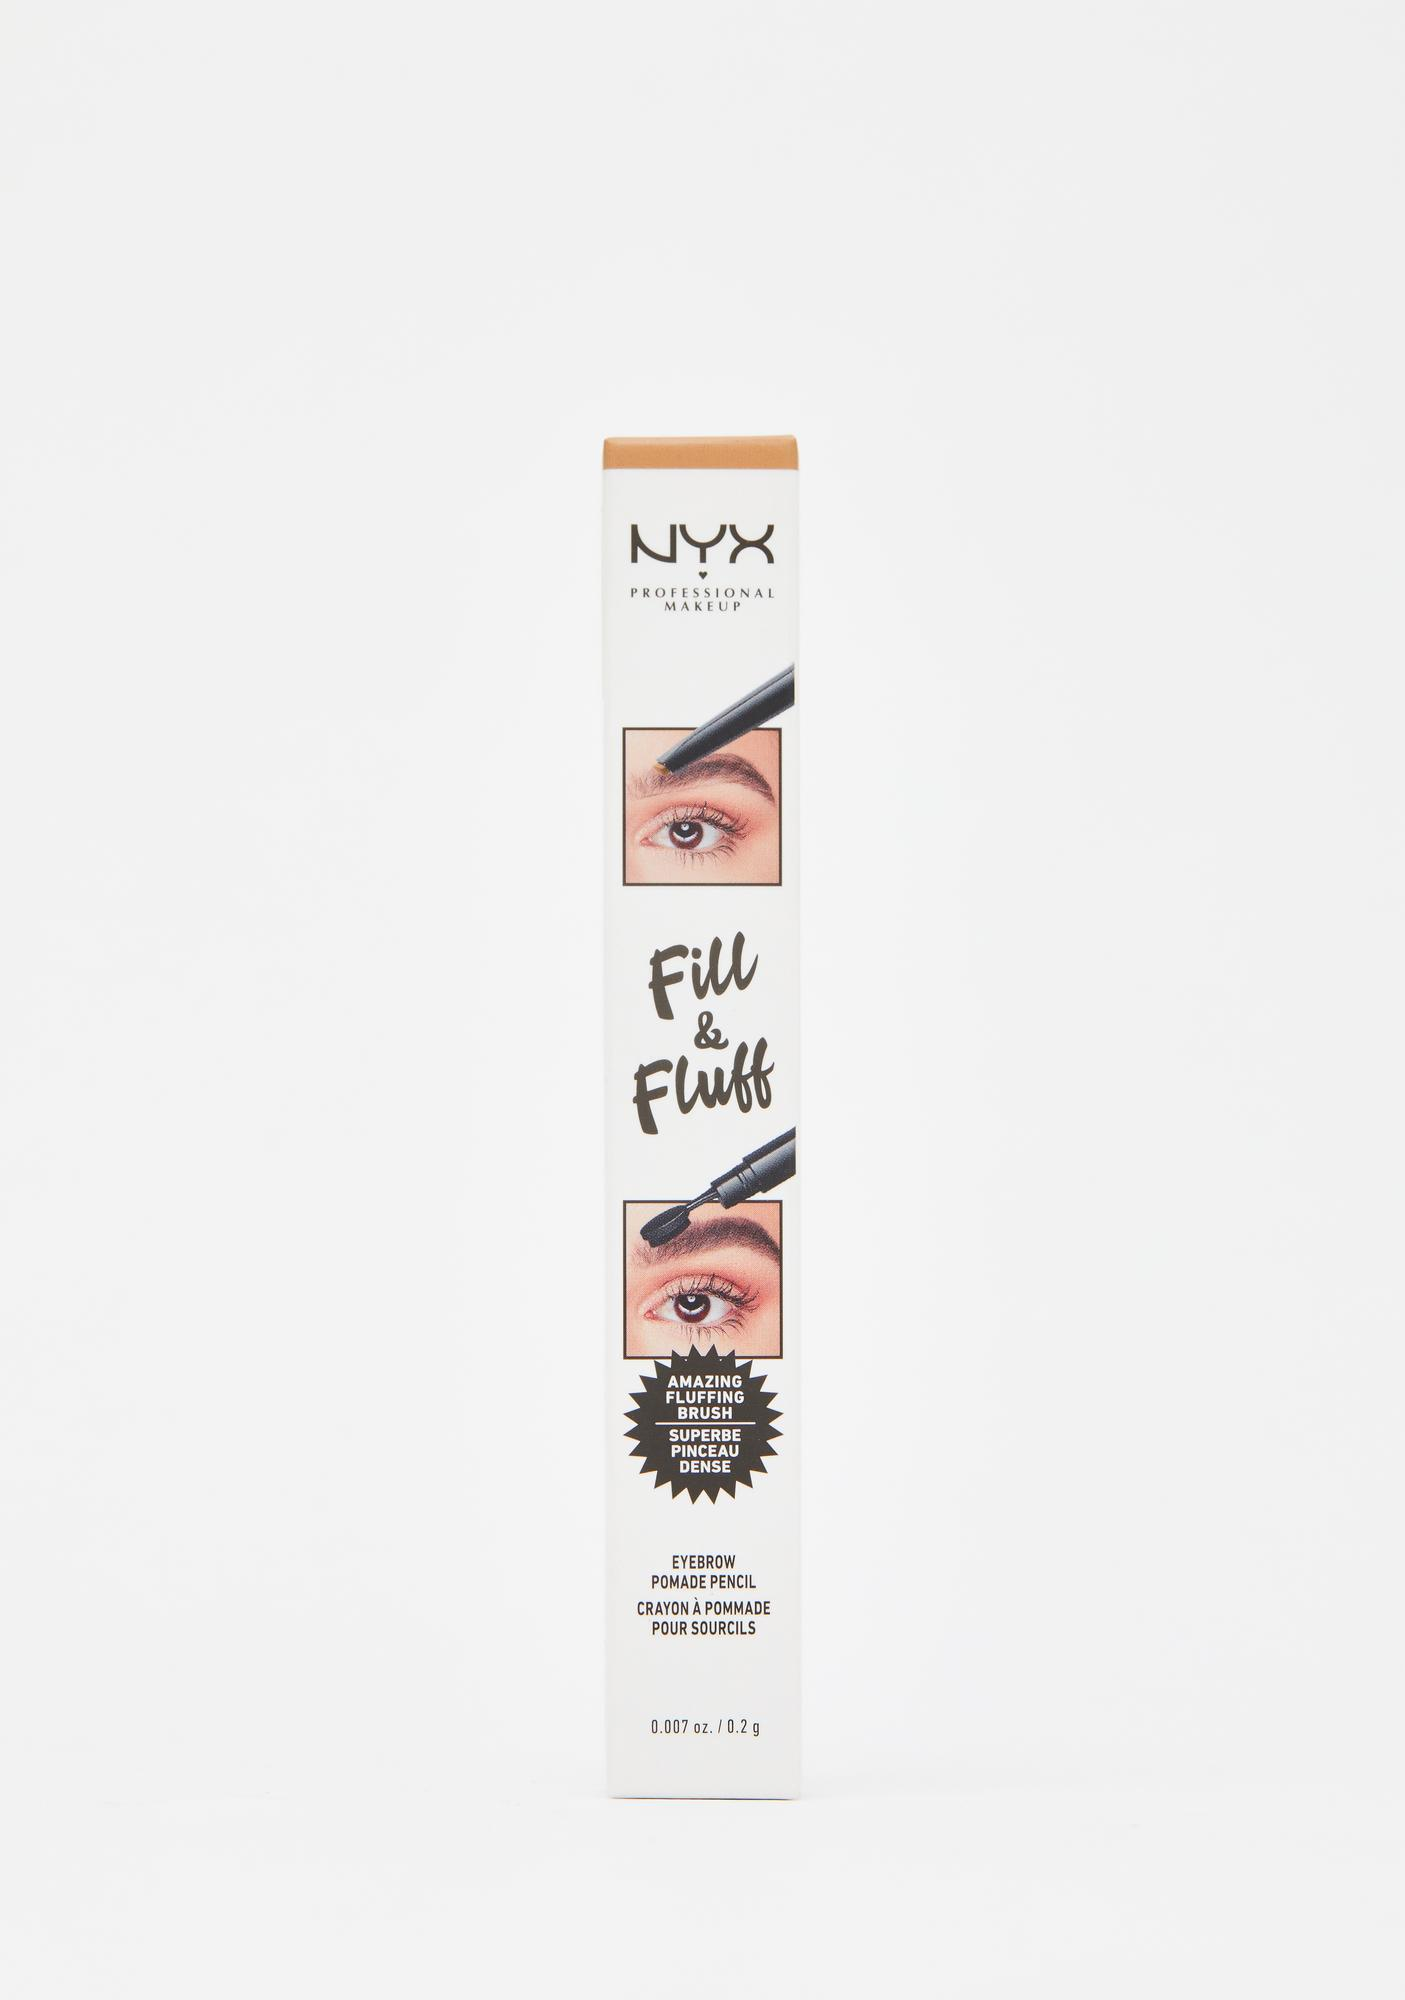 NYX Professional Makeup Blonde Fill & Fluff Eyebrow Pomade Pencil